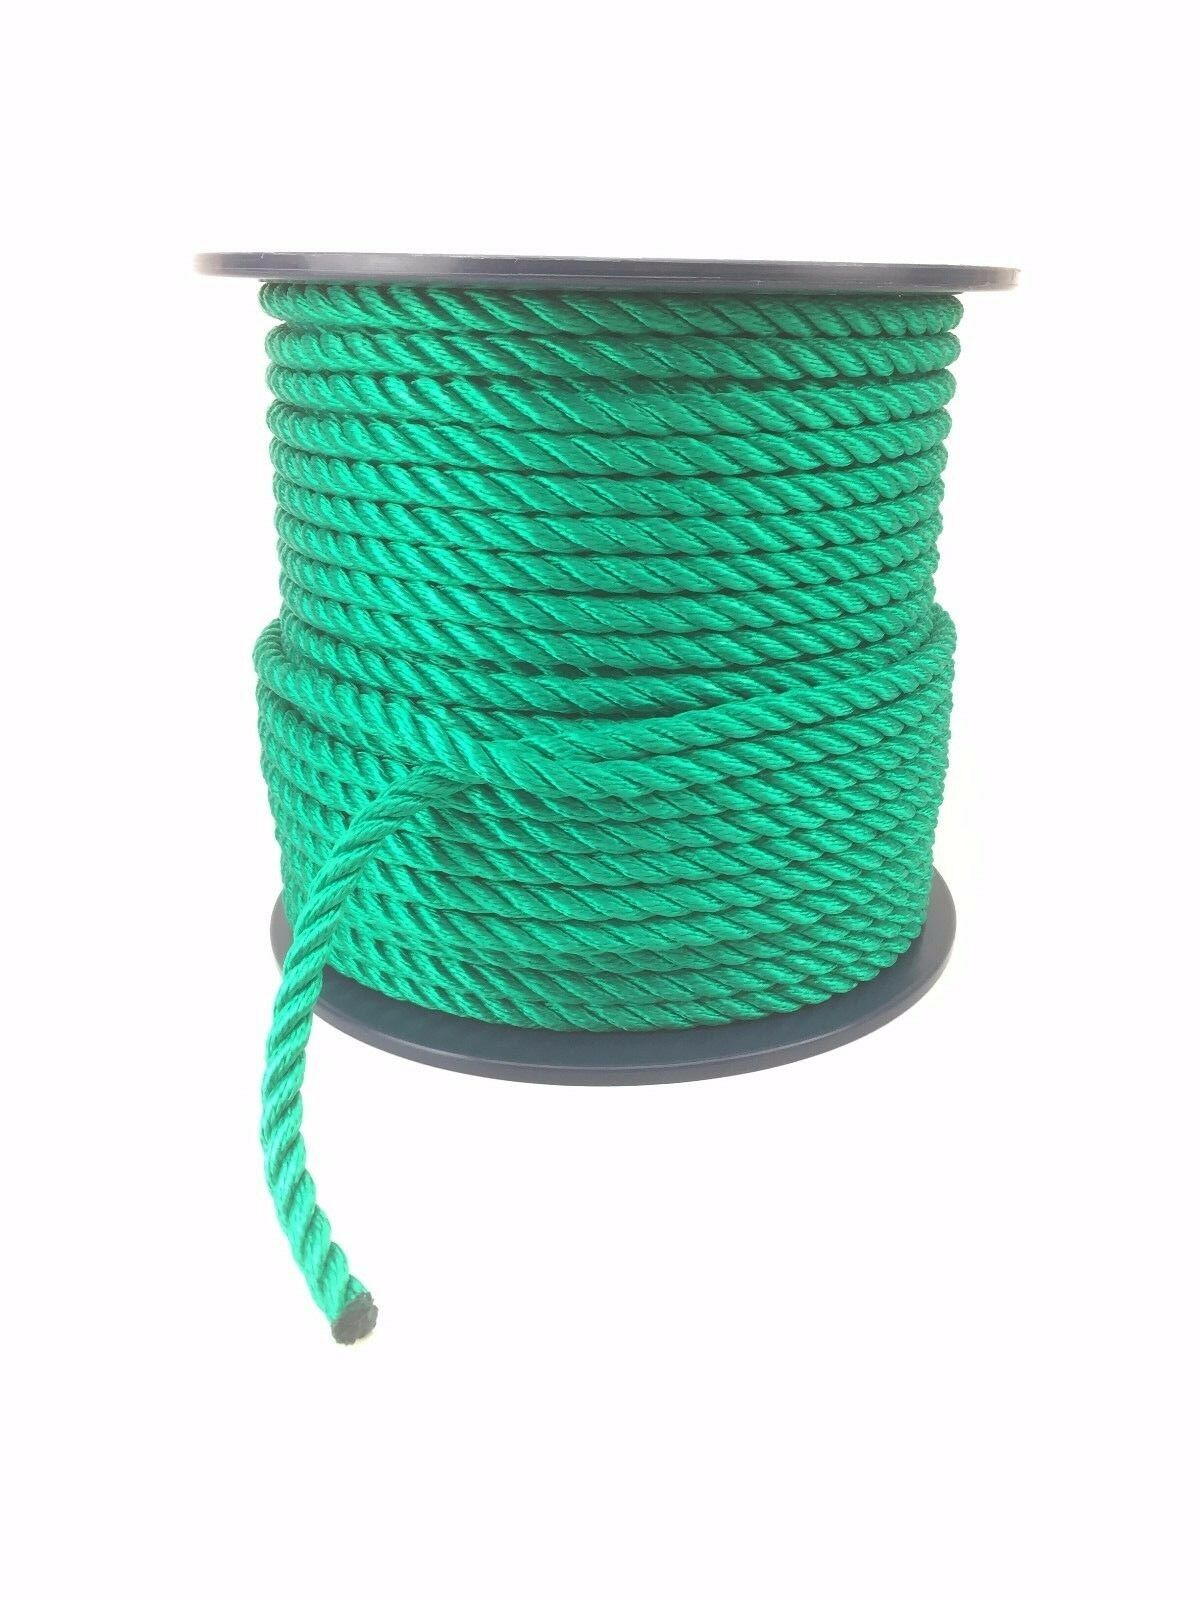 3 Strand Green Multifilament 10mm (Floating Rope) x 100m Reel Boats Yachts